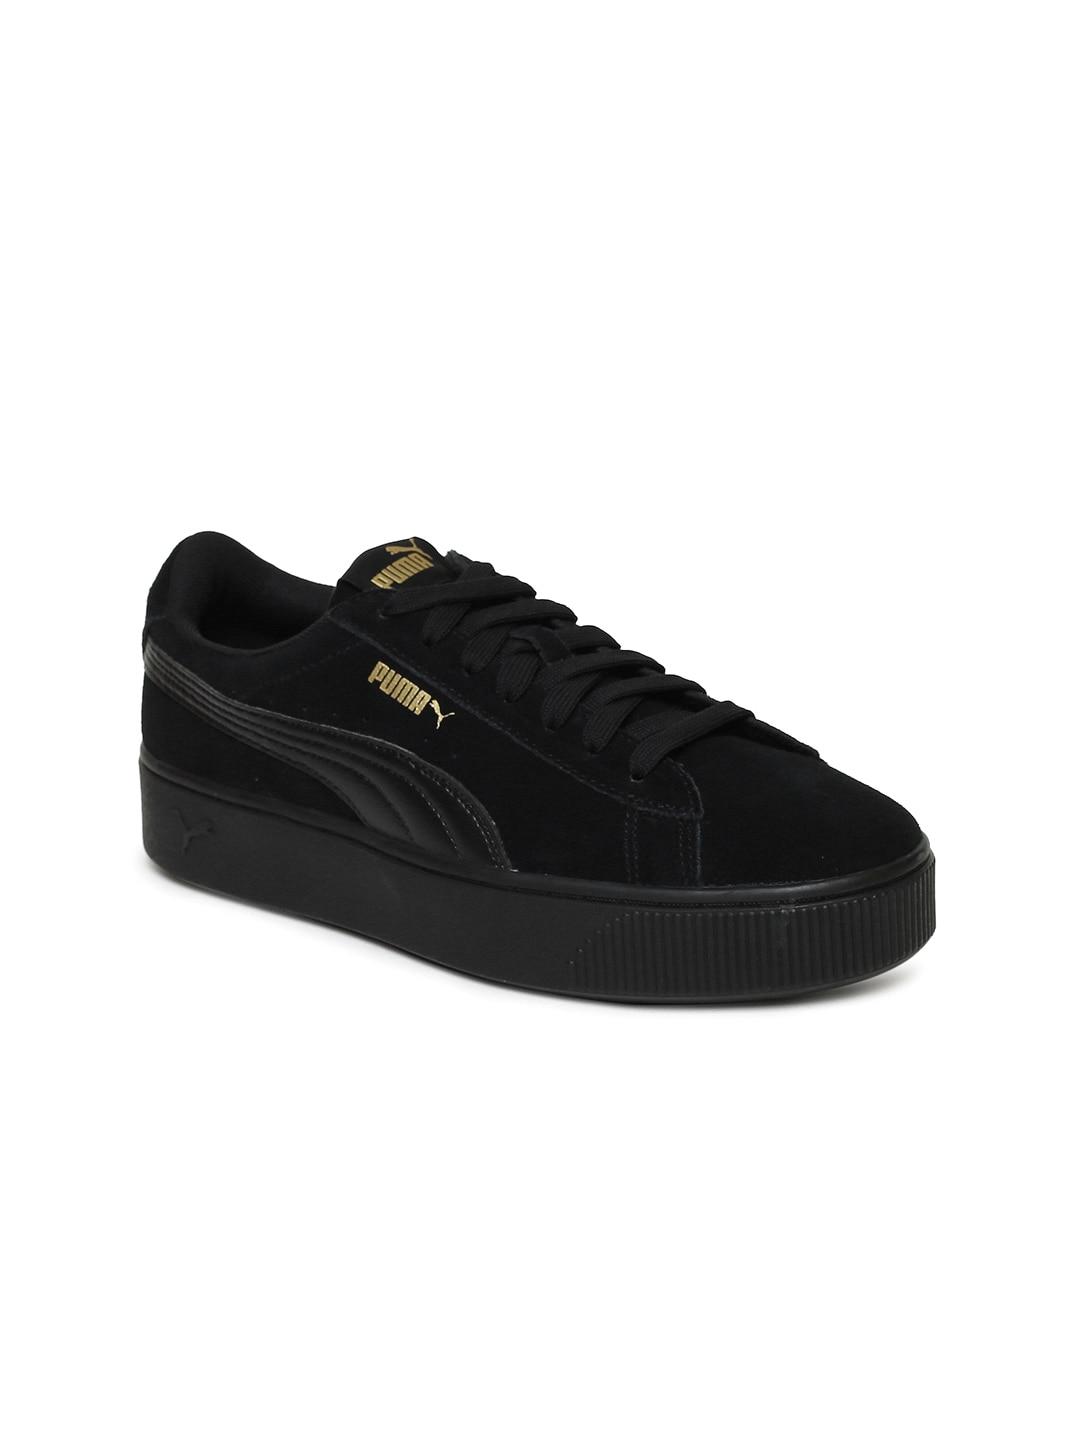 b33dd6a80e6d Puma Suede Footwear - Buy Puma Suede Footwear online in India